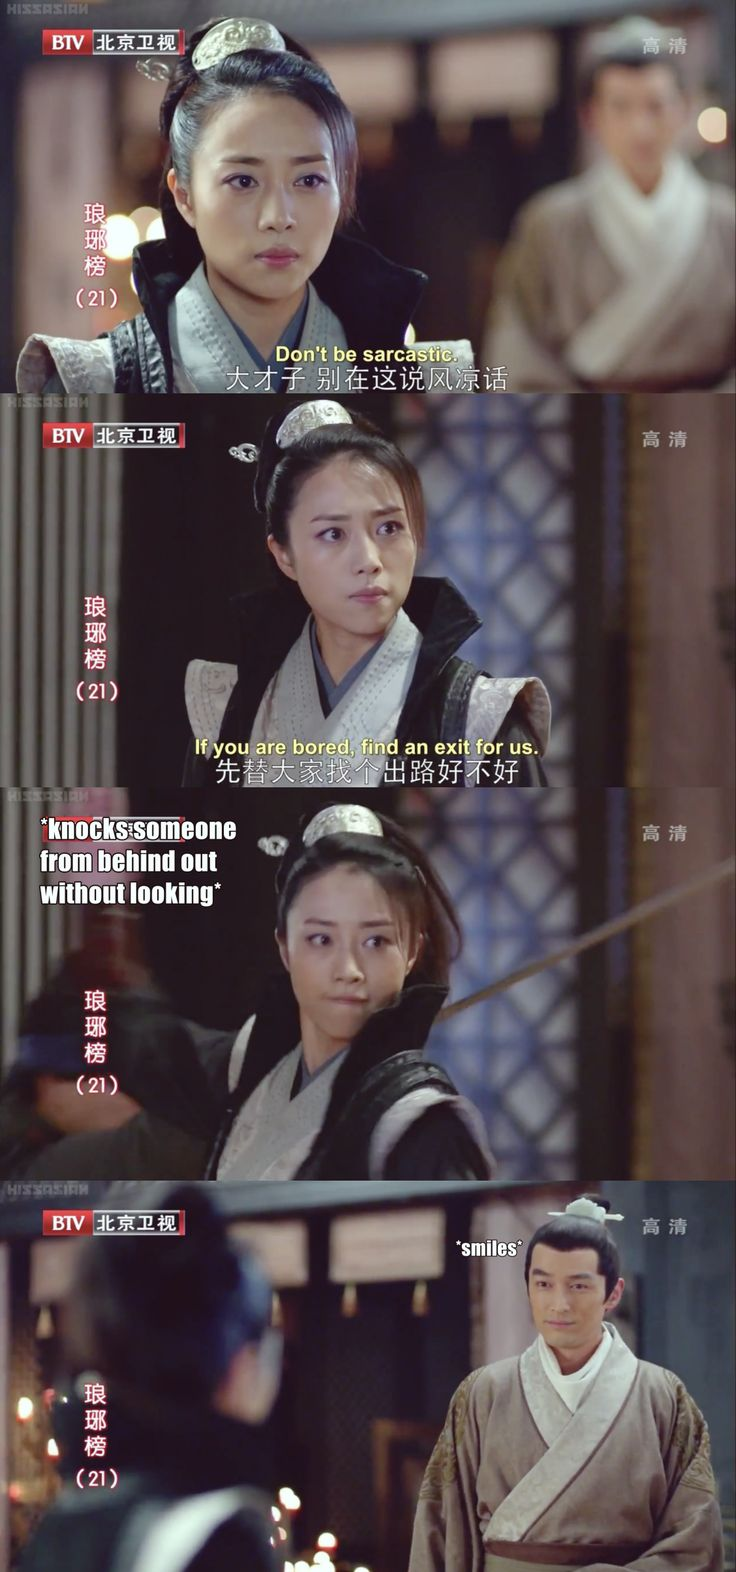 Watching Nirvan In Fire ep.21 haha I sensed not a small amount of chemistry between them in this scene XP even wished they'd be a love triangle with Ni Huang > < But they could really become a dream team imo. Like Seung Nyang and Tal Tal :D  [3.1.16 / So 18:00]